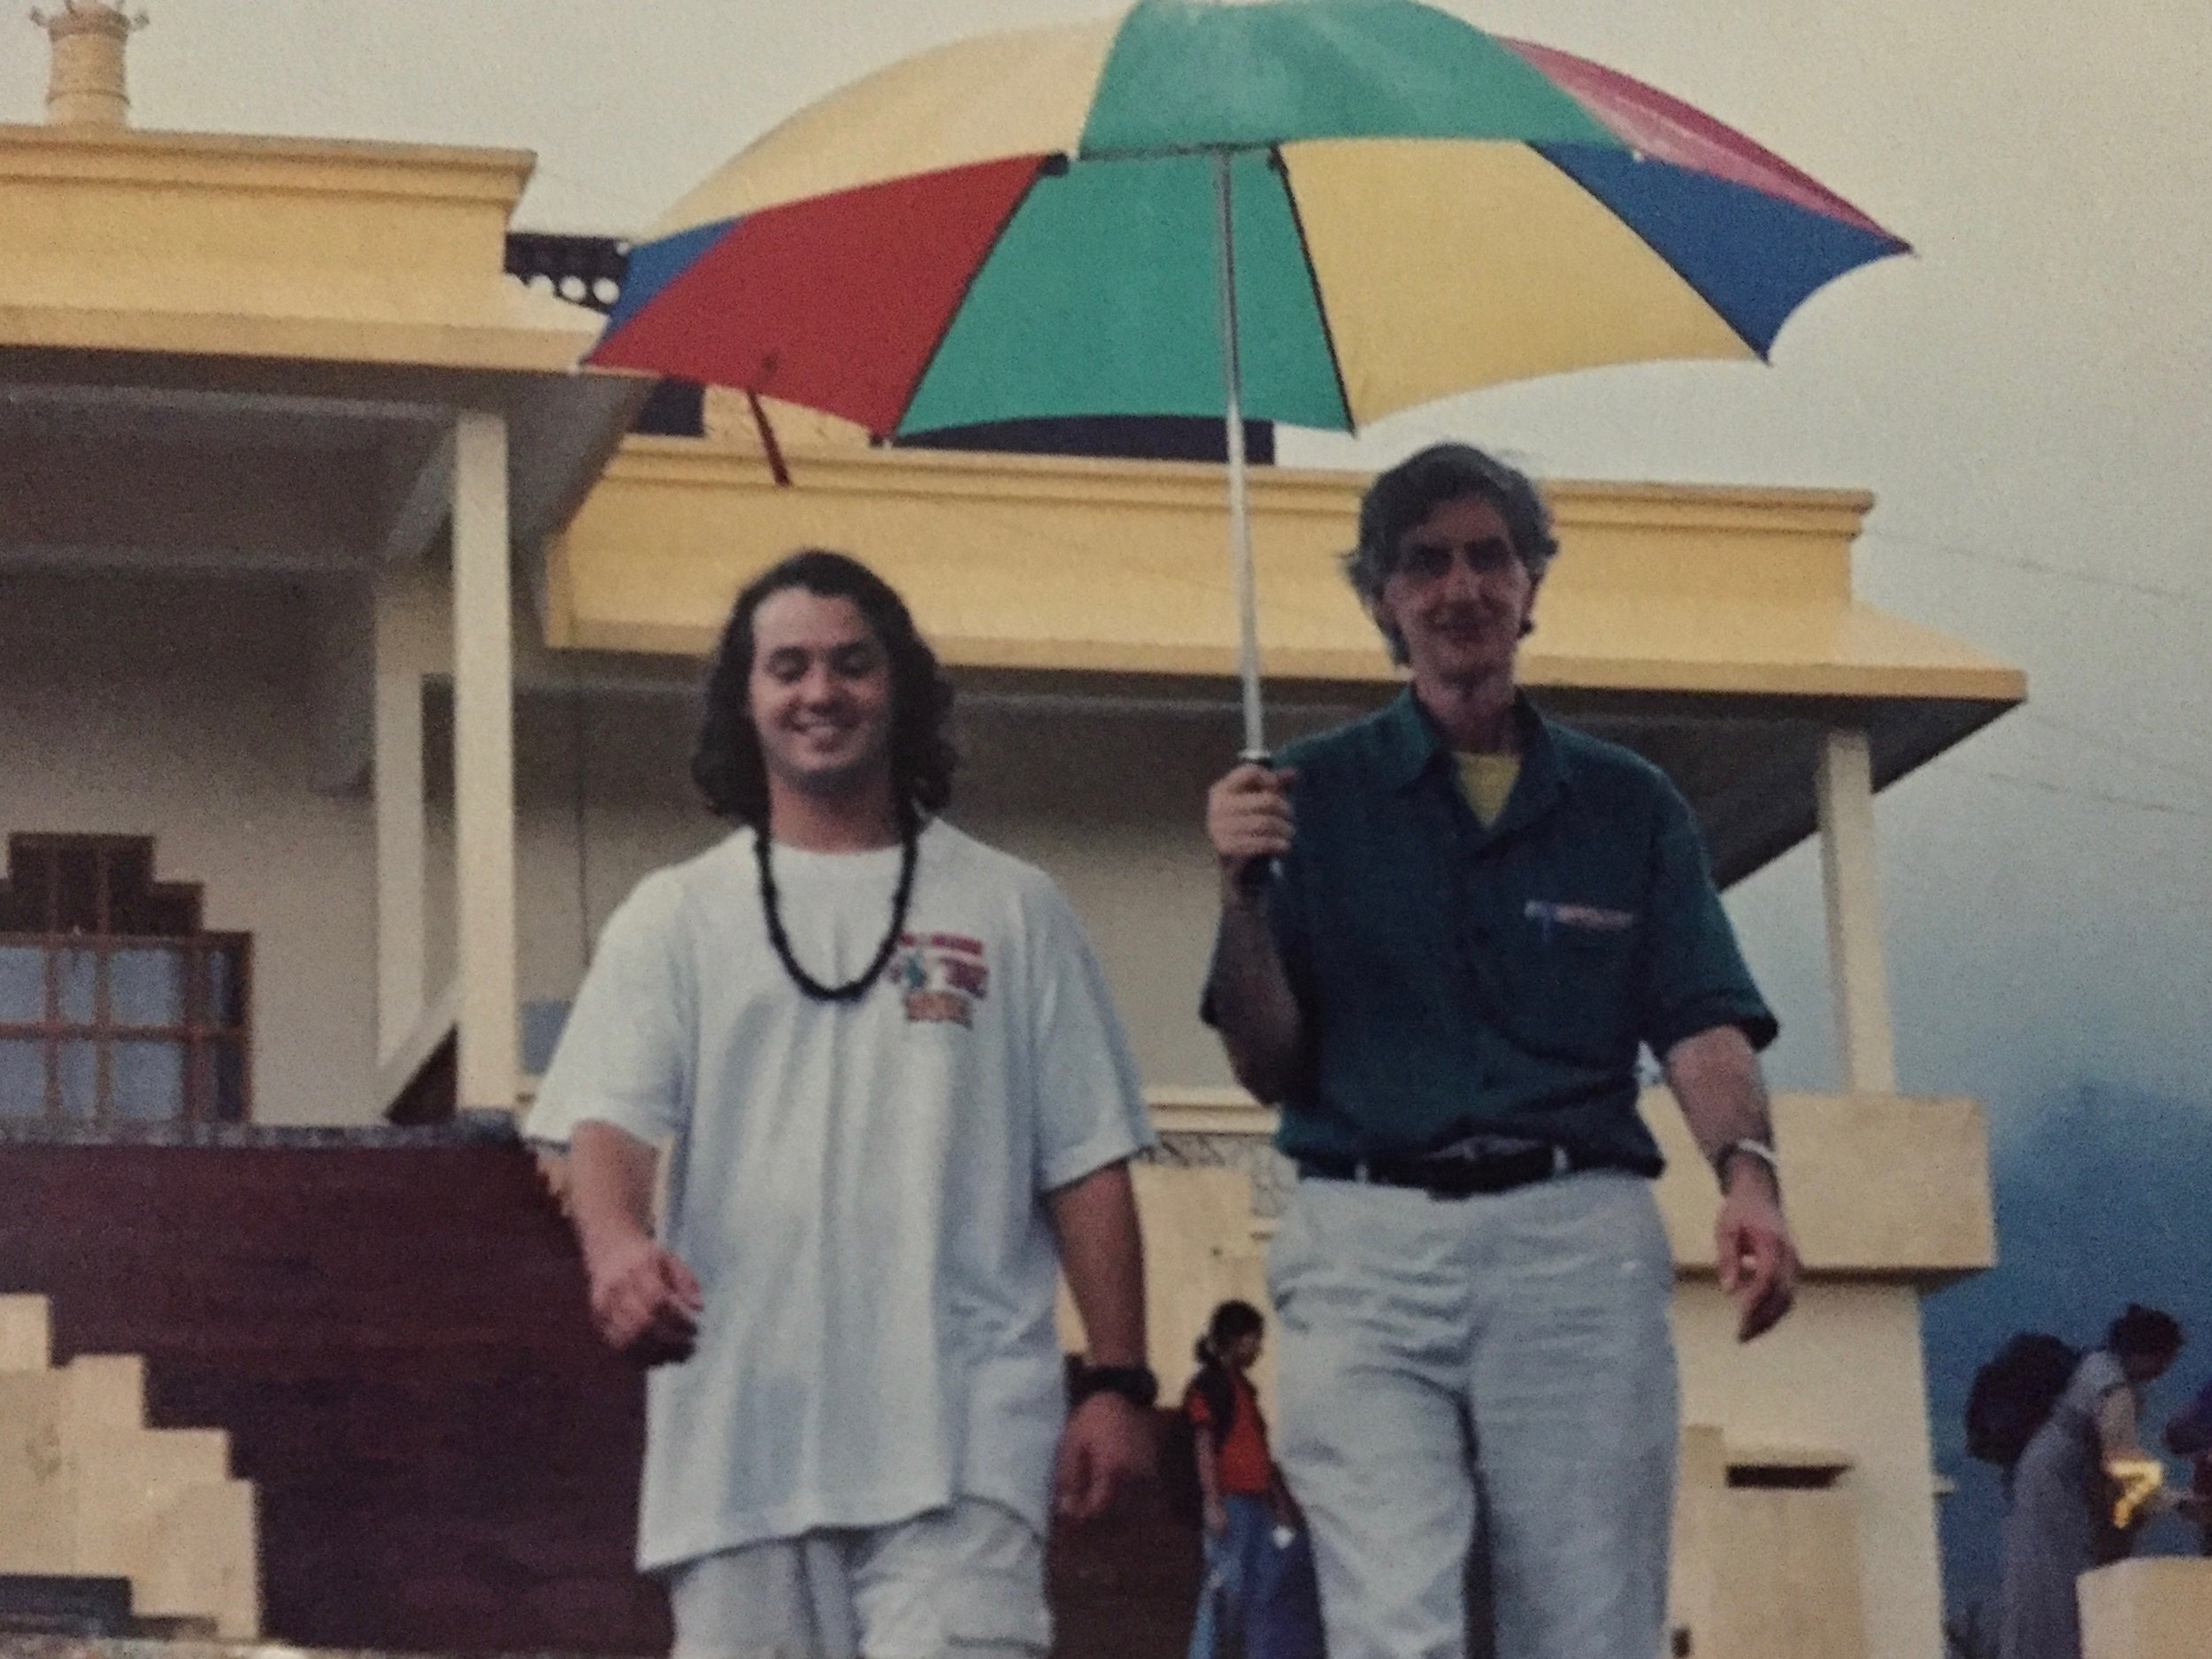 Rory McEntee and Wayne Teasdale in Dharamsala, India. (Unknown)